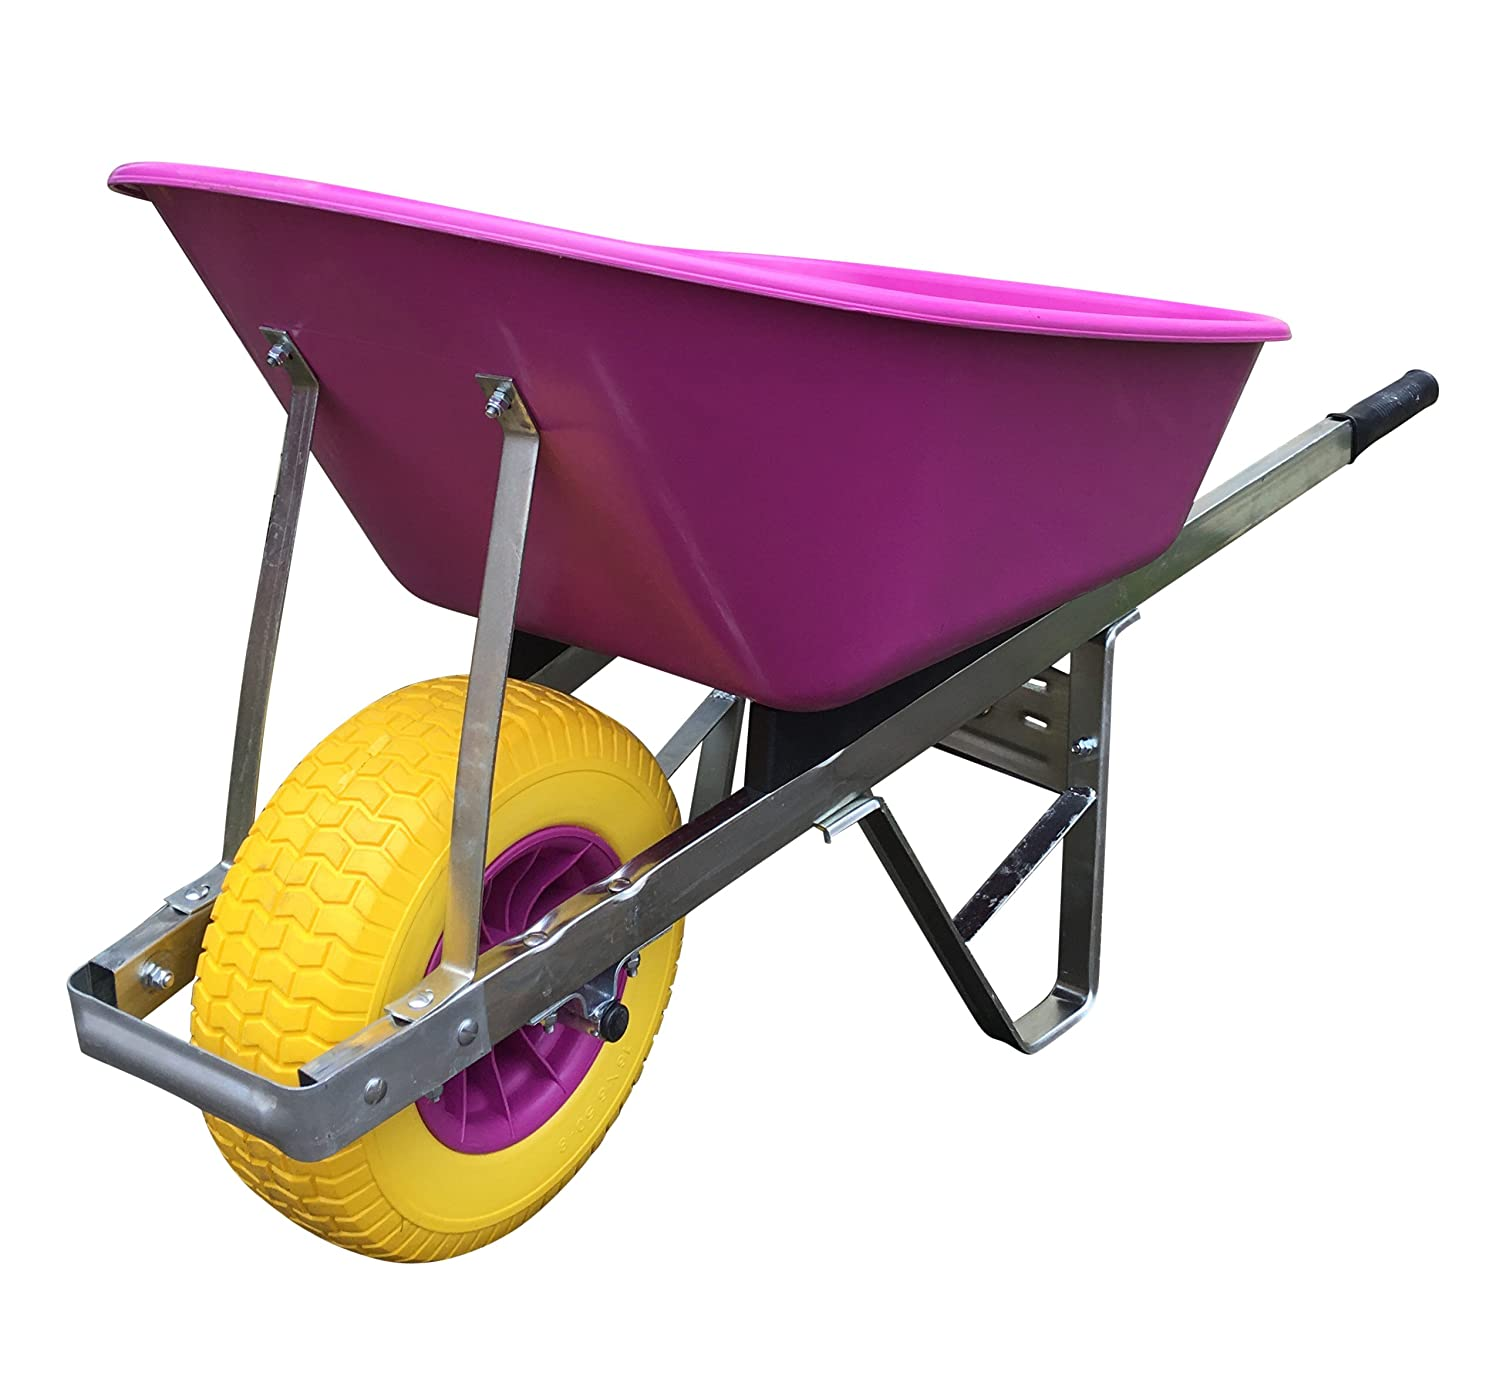 wheelbarrow pink 120L with 150mm wide Puncture-Proof tyre Wheelbarrows Direct Ltd.